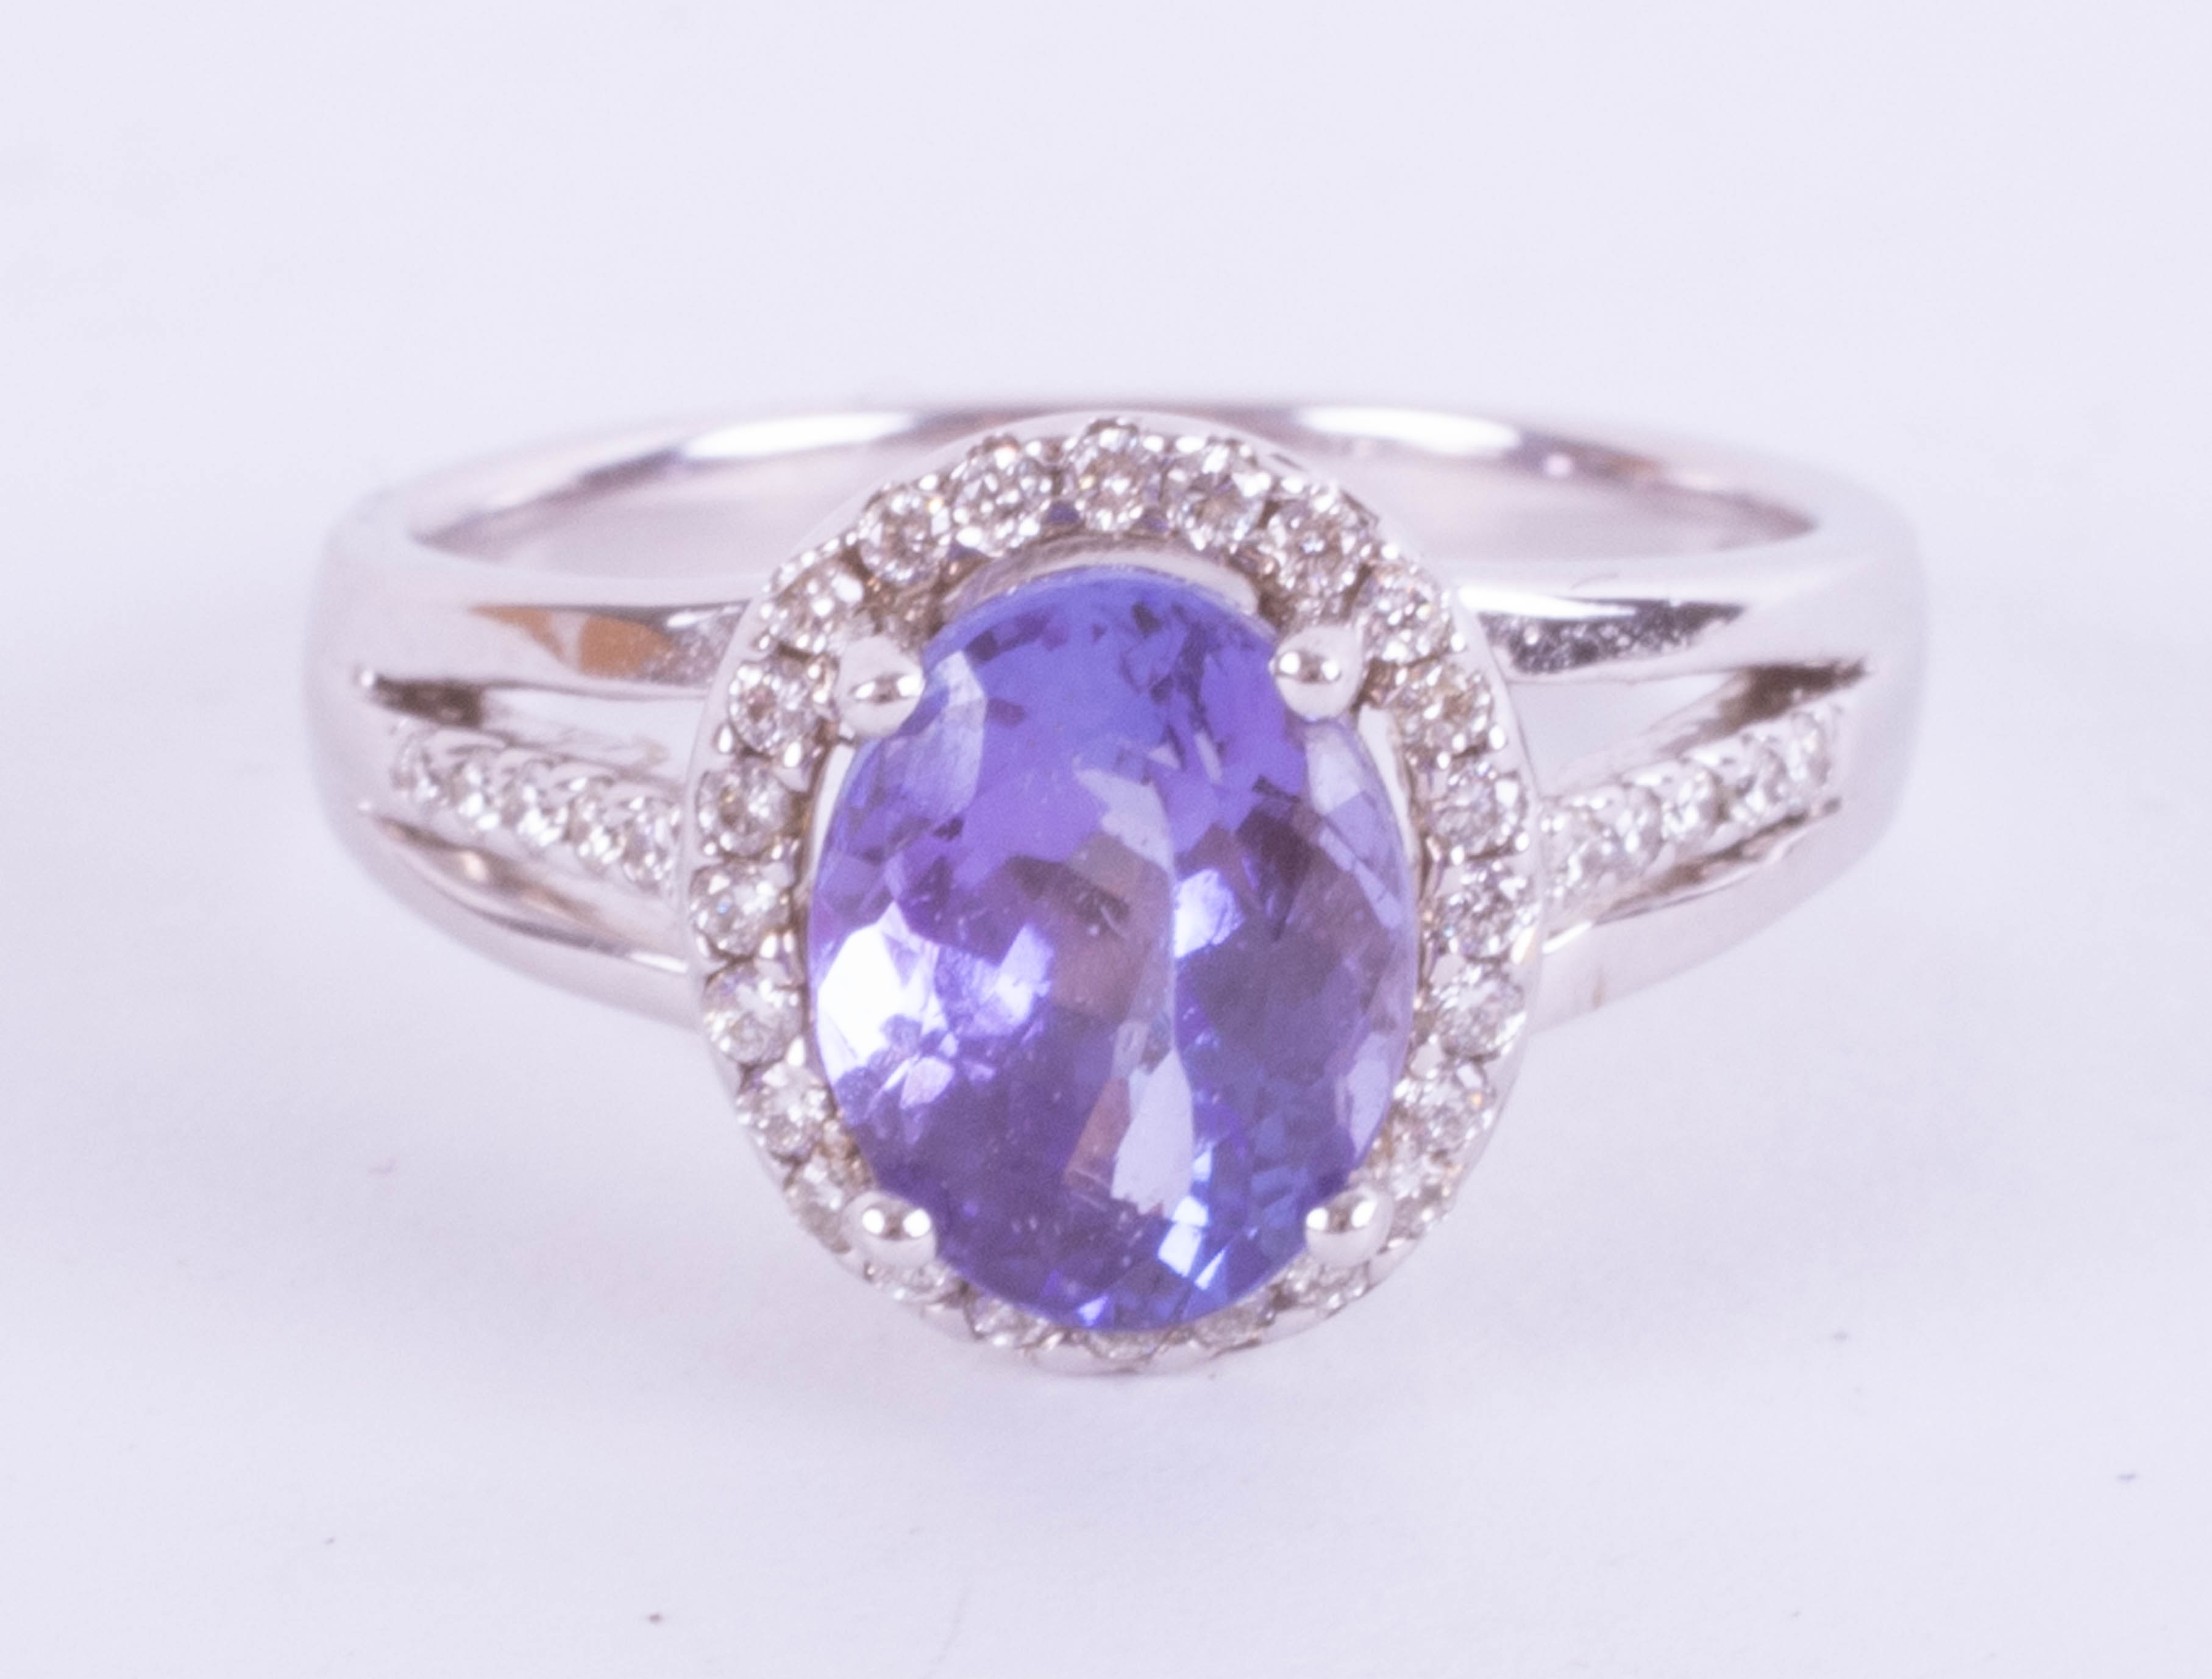 An 18ct white gold diamond and Tanzanite ring approx. 2.75ct, ring size N.